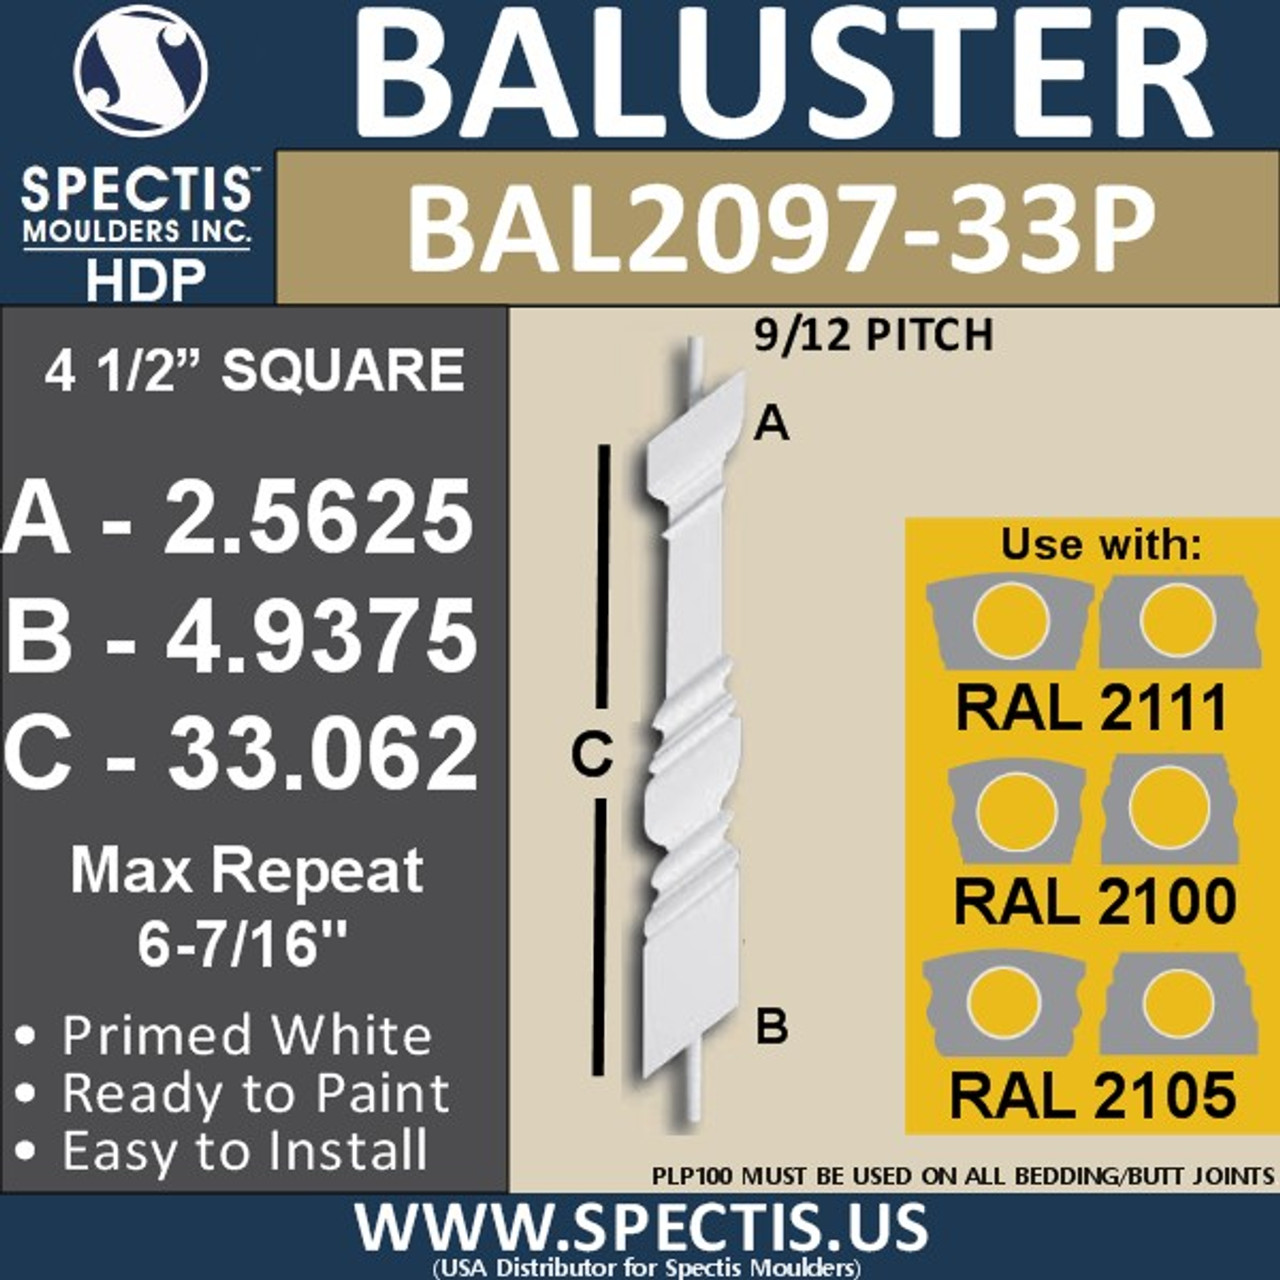 "BAL2097-33P 9/12 Pitch Railing Baluster 4 1/2"" x 33 1/16"""